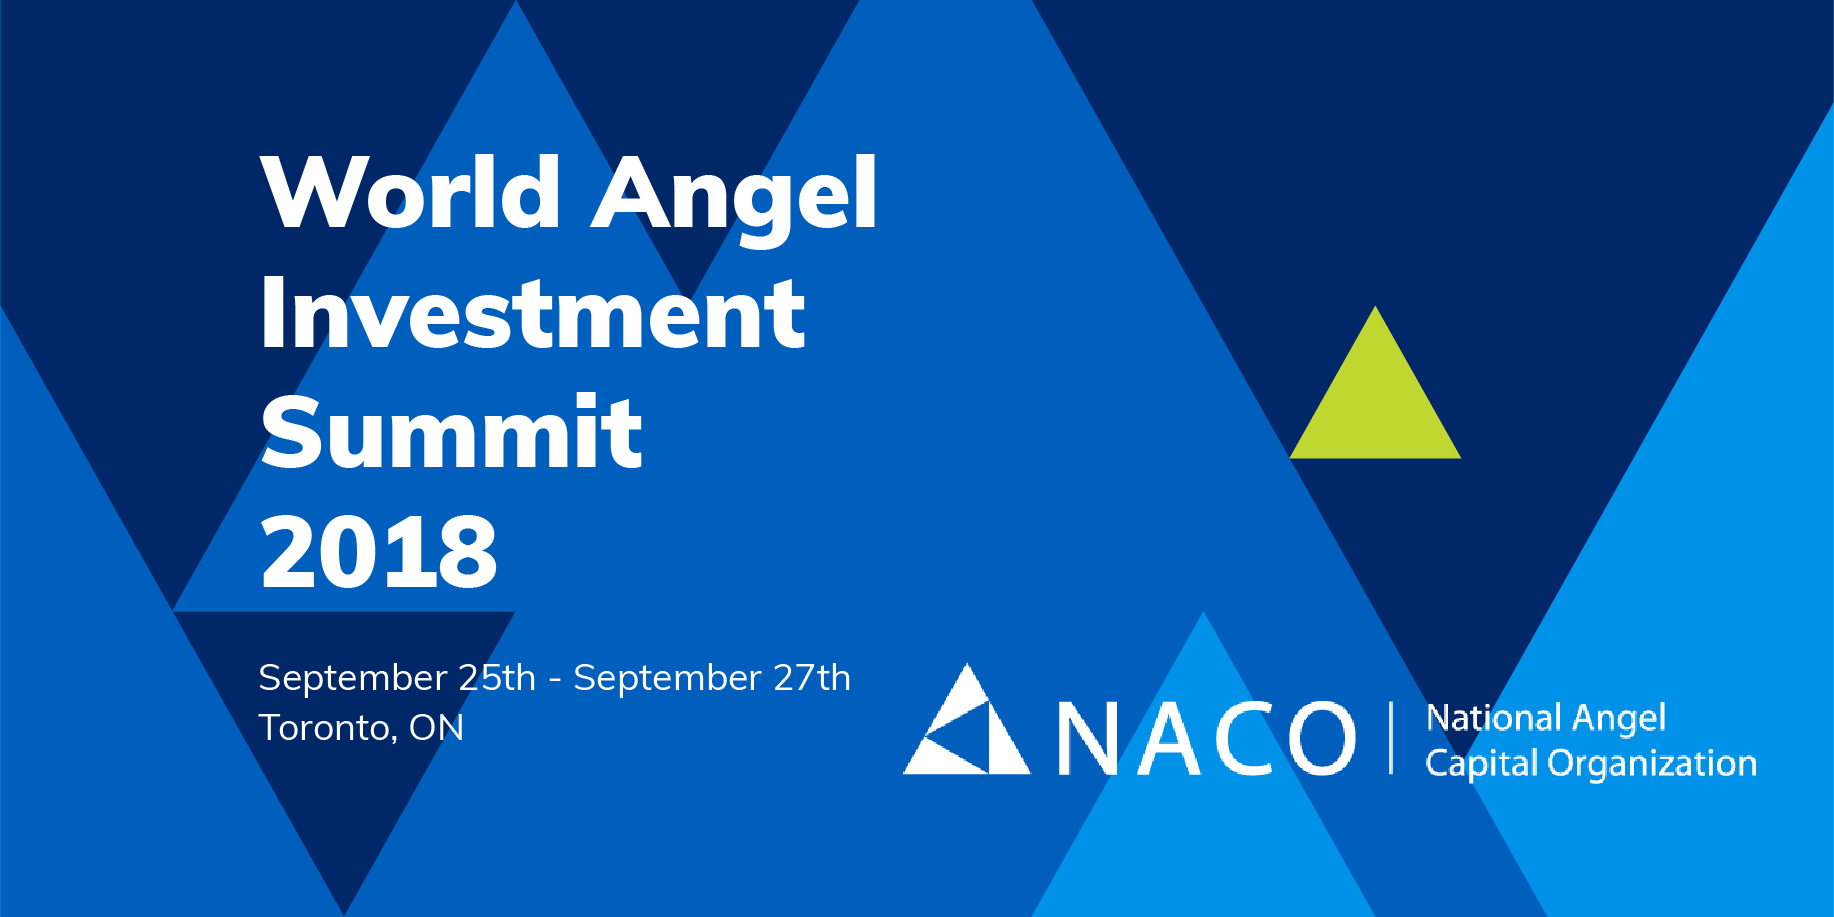 York Angel Investors - World Angel Investment Summit 2018